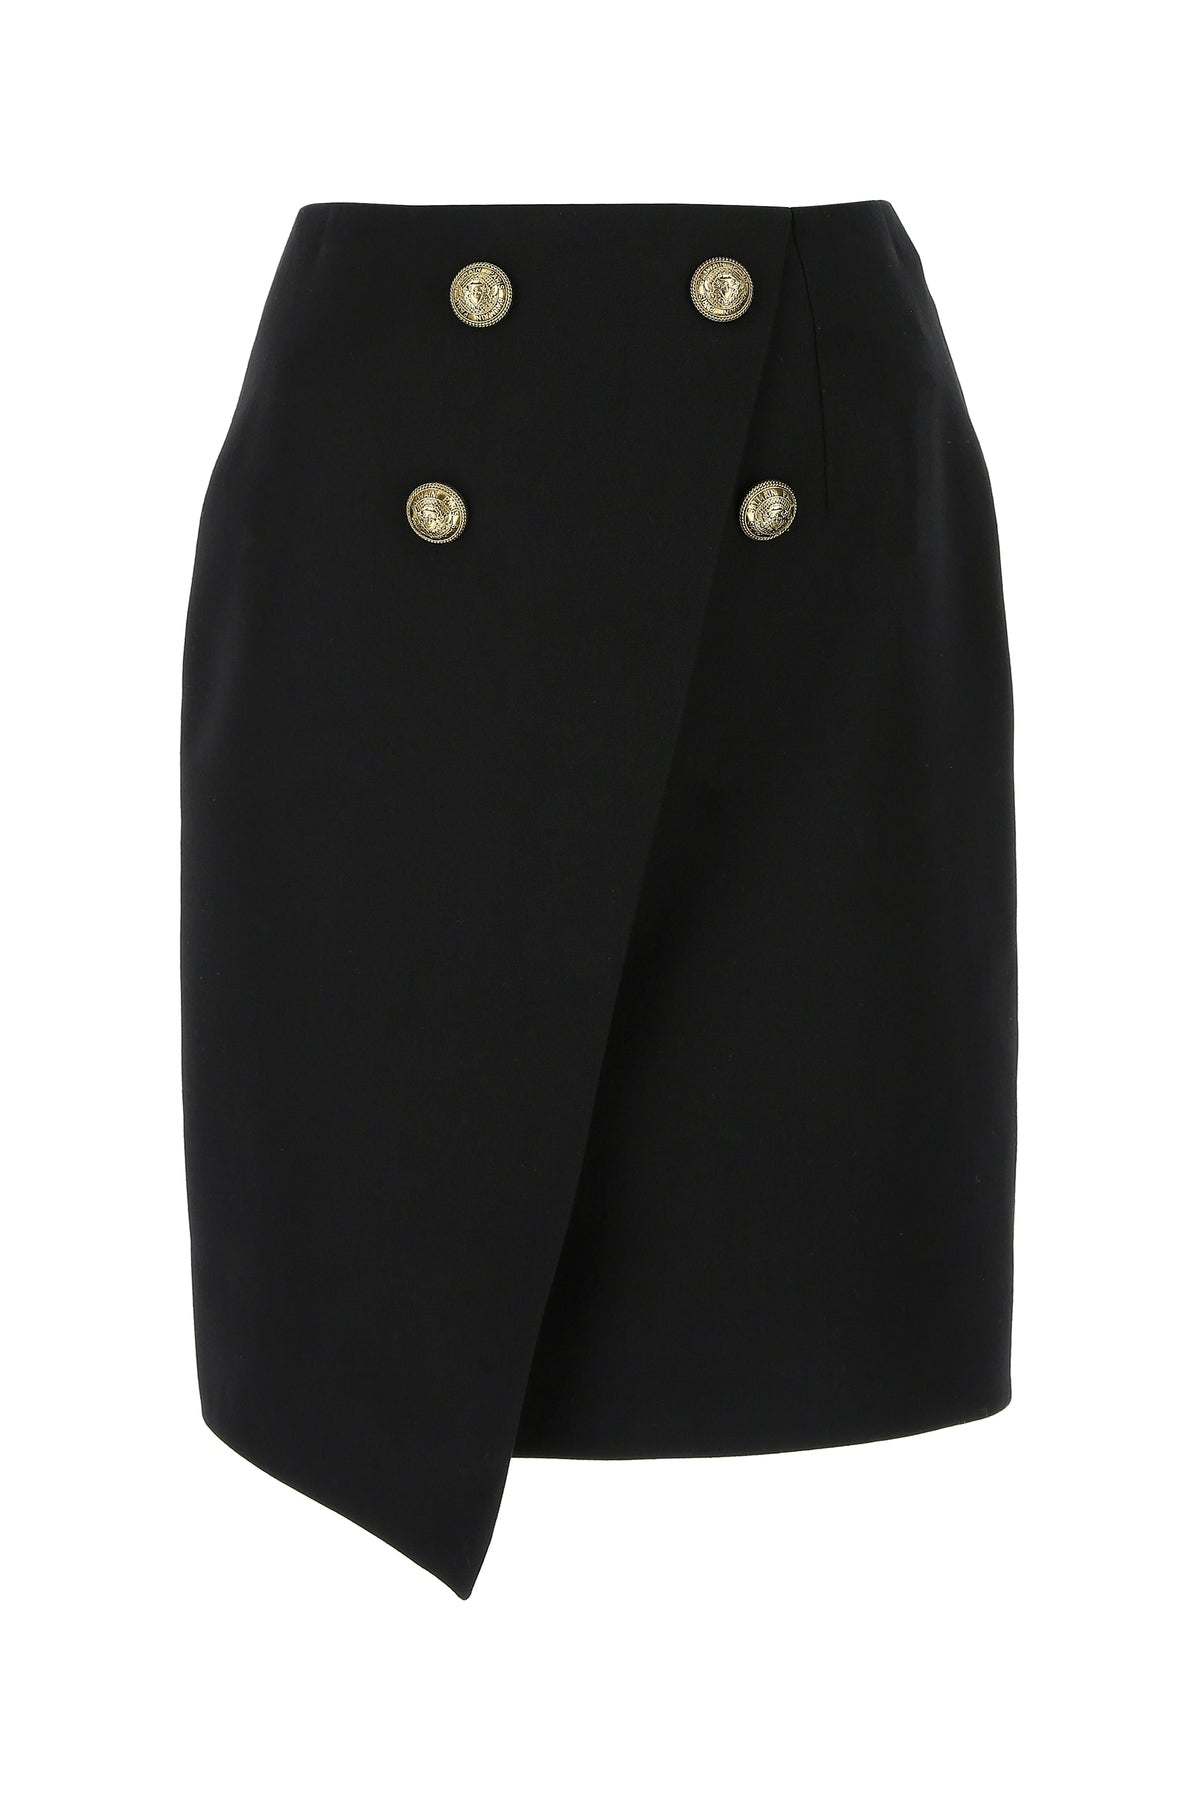 Balmain Cottons BALMAIN ASYMMETRIC MINI SKIRT